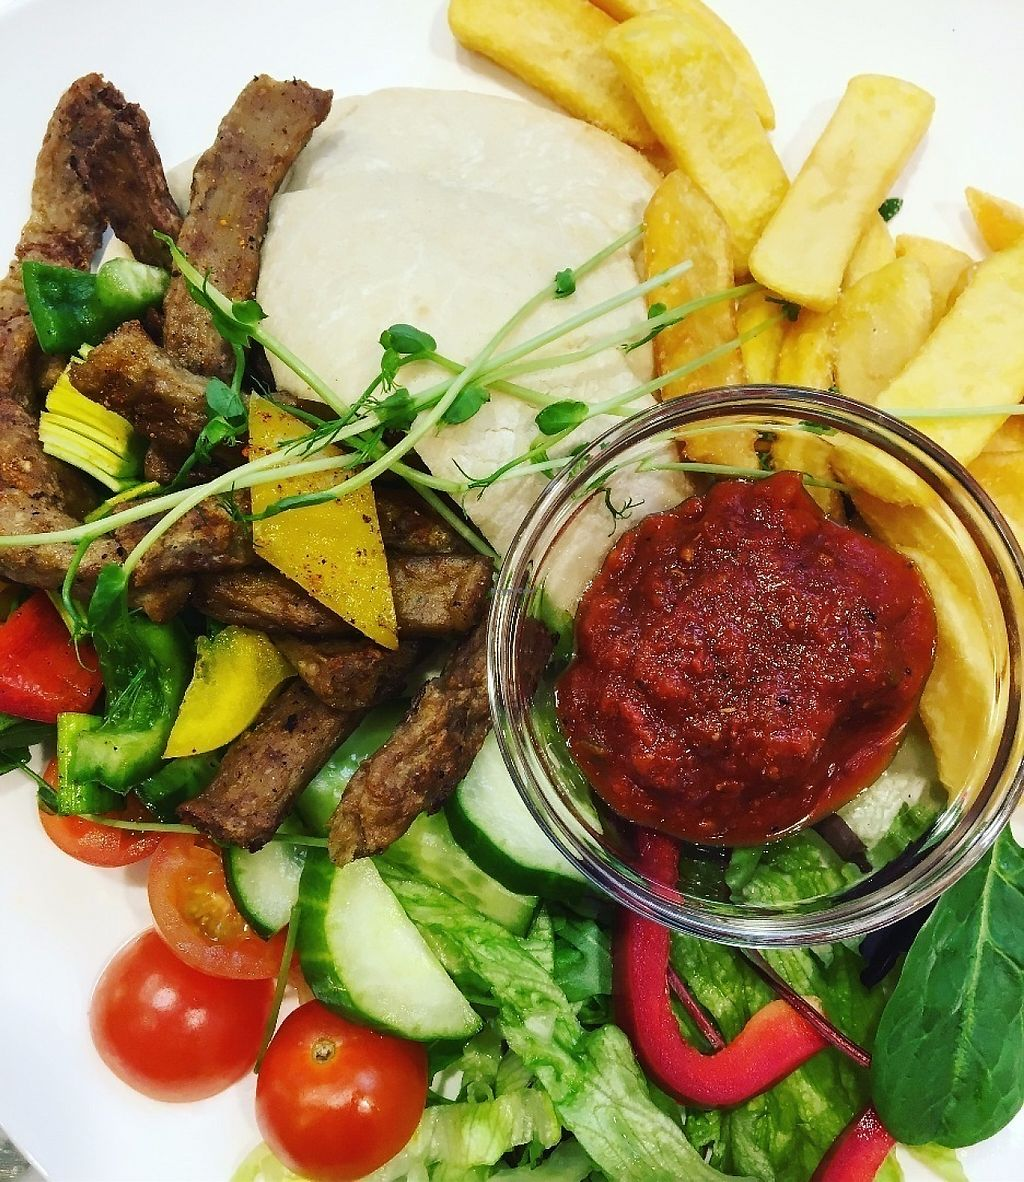 "Photo of Restaurang 4 Kök  by <a href=""/members/profile/SamiraAssaad"">SamiraAssaad</a> <br/>Beefstyle strips with fries, salsa and salad <br/> June 5, 2017  - <a href='/contact/abuse/image/93312/265965'>Report</a>"